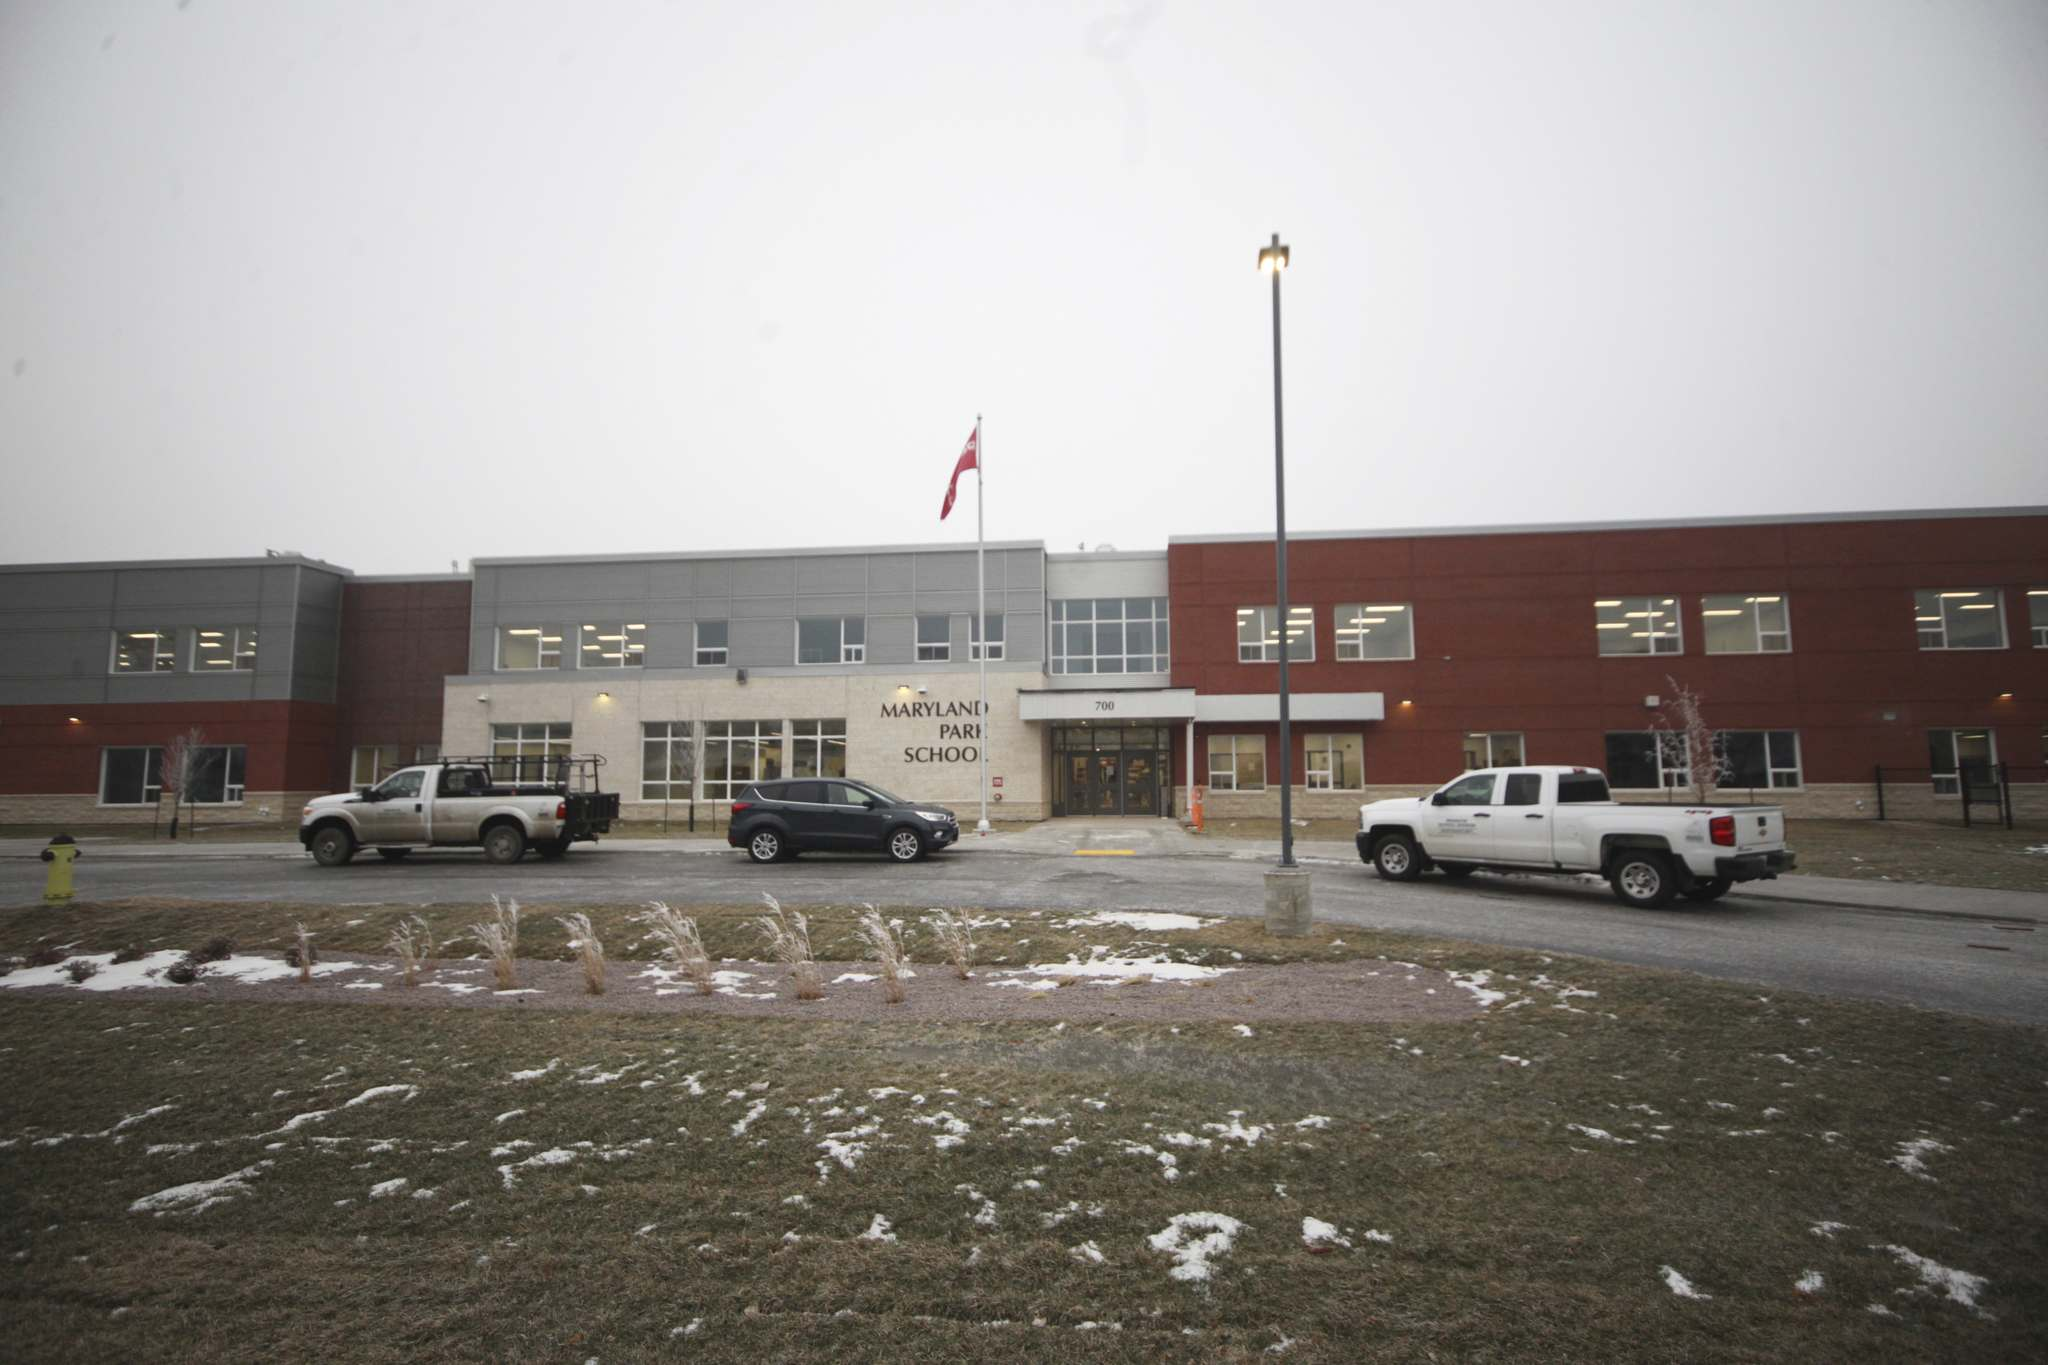 The exterior of Maryland Park School on Friday afternoon. Brandon's newest school will officially welcome K-8 students and staff starting in January. (Matt Goerzen/The Brandon Sun)</p></p>